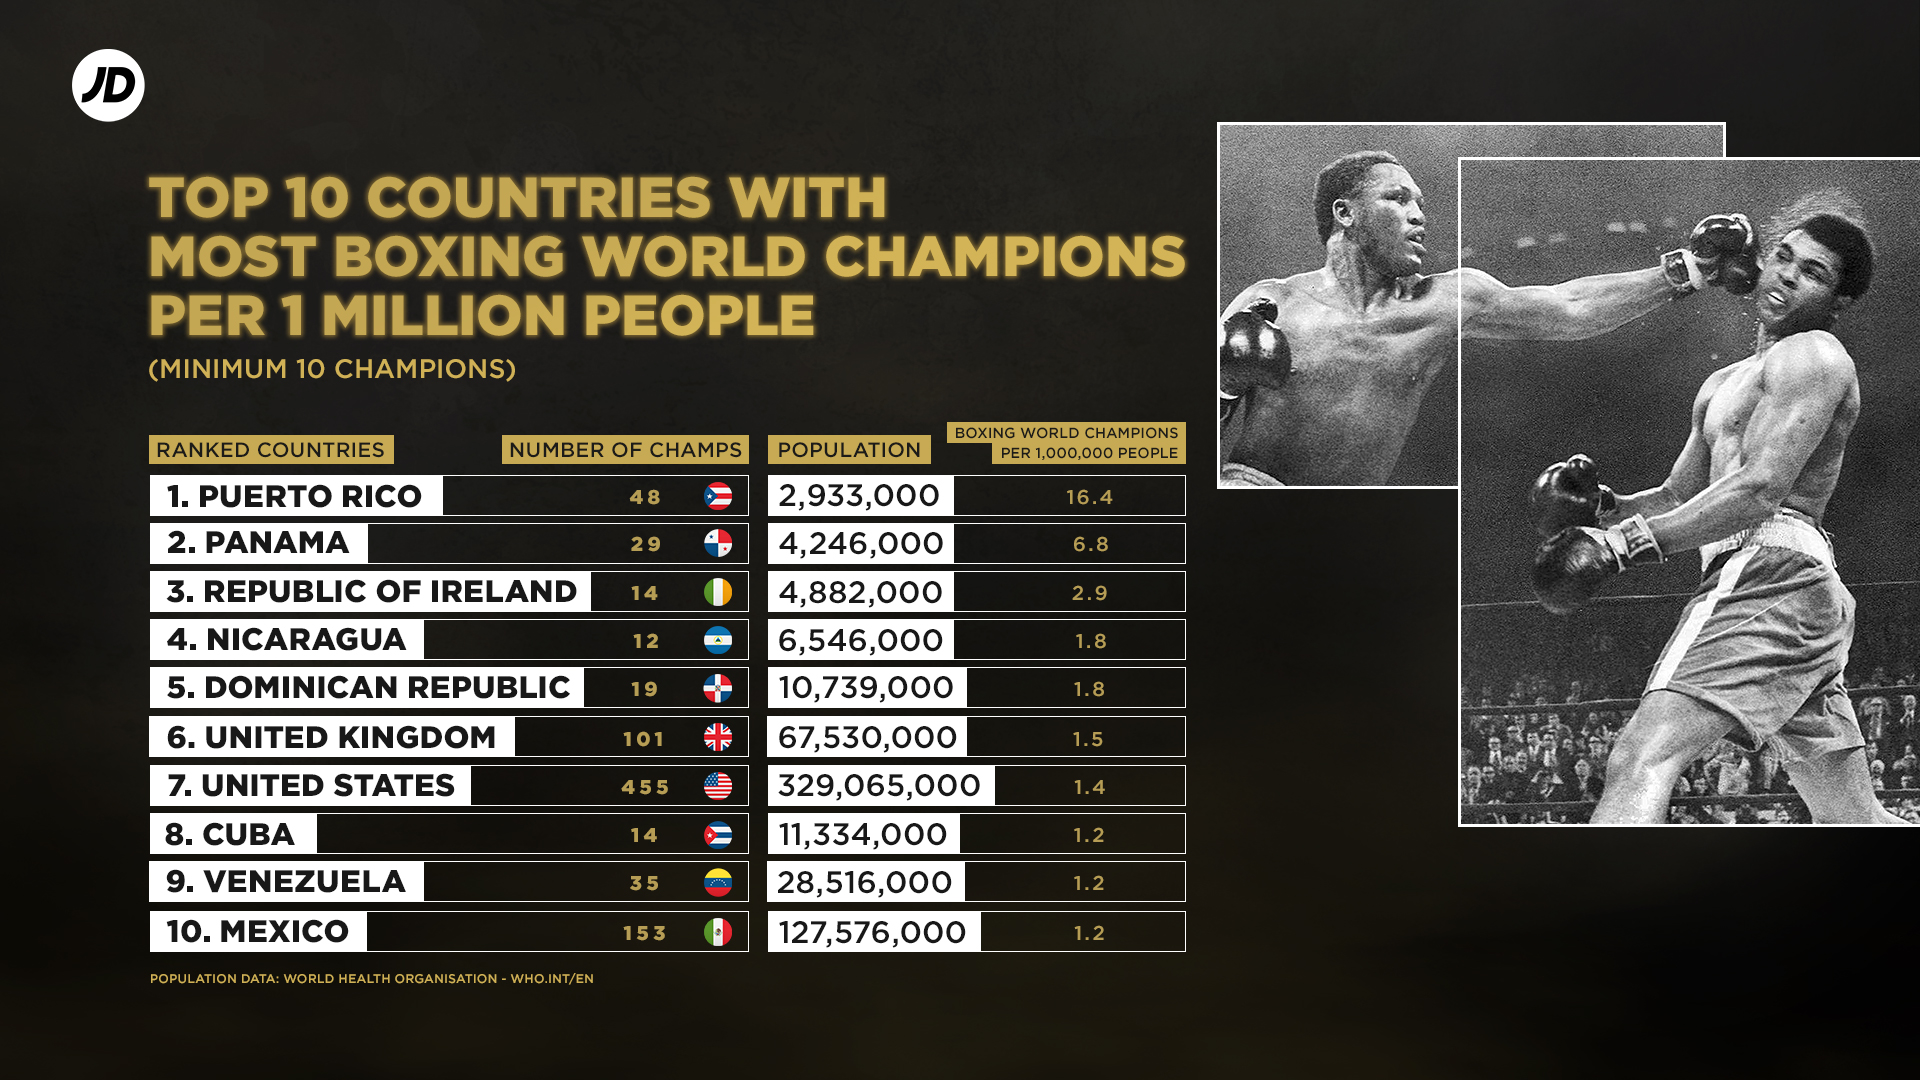 Top 10 countries with most boxing champions per capita